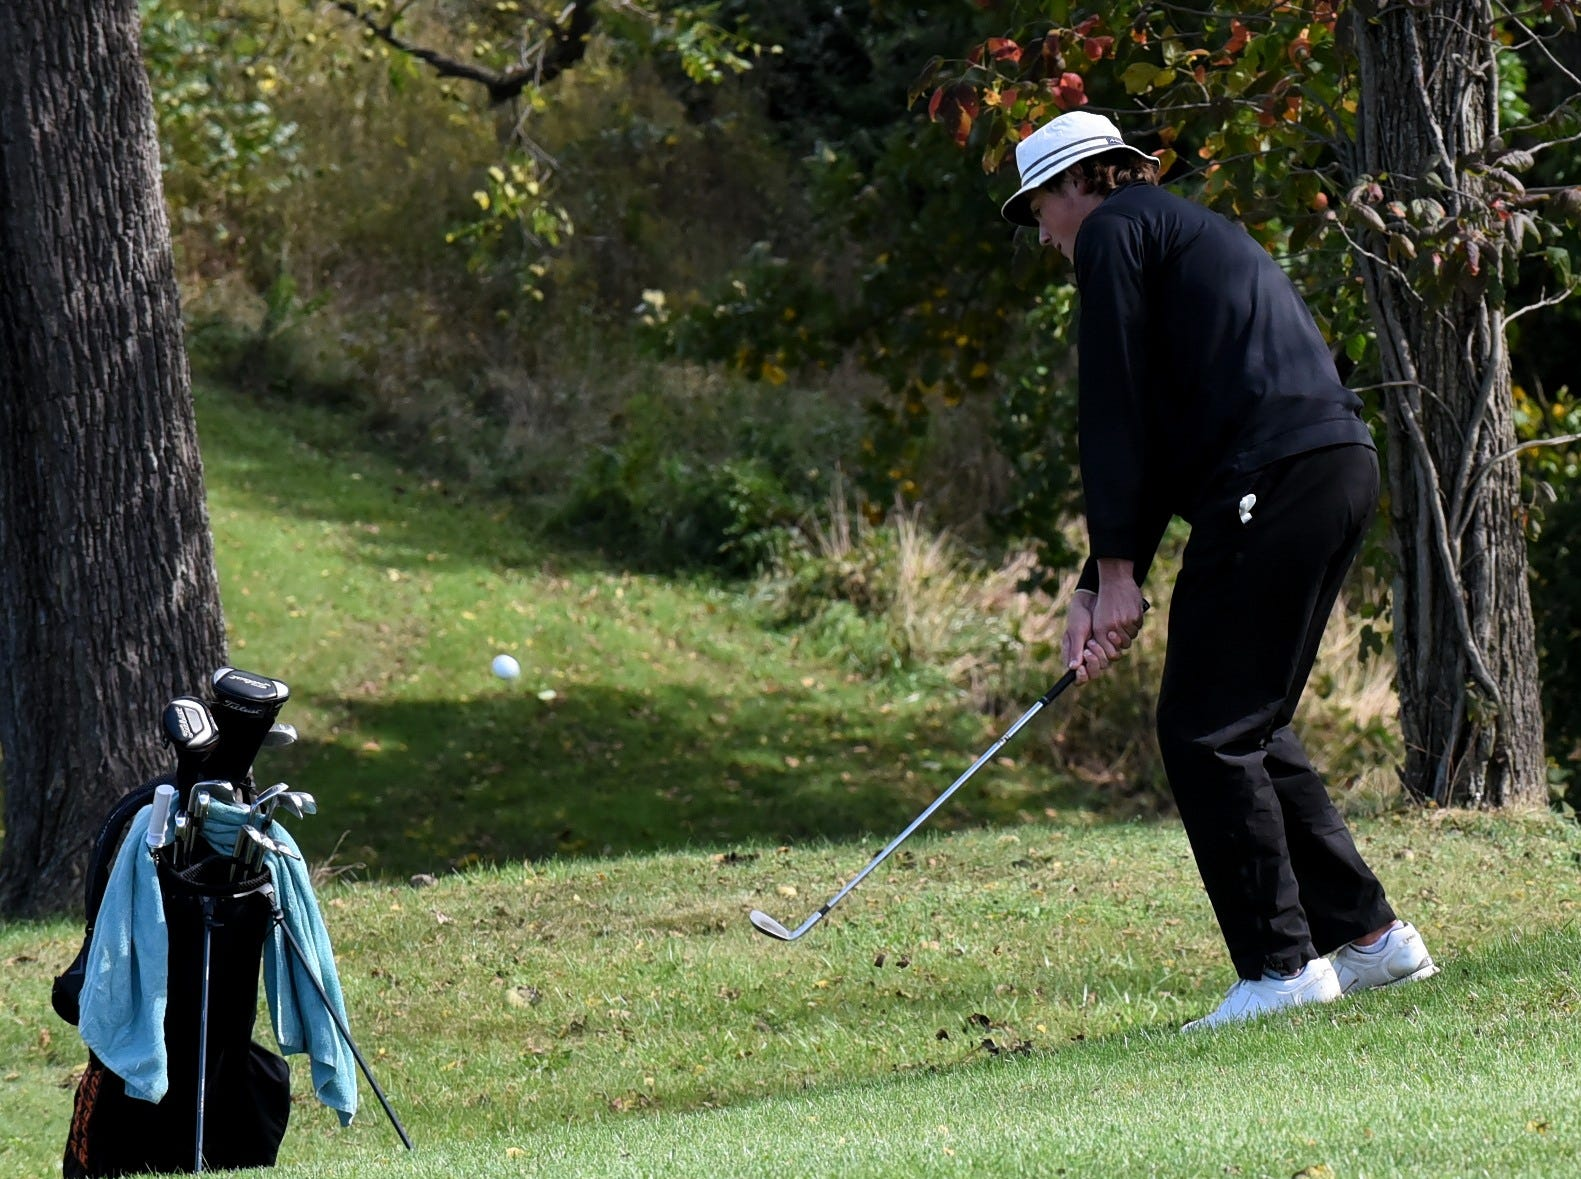 Joe Vosel of Anderson pitches his way to the green at the 2018 Southwest District Golf Tournament in Beavercreek, Ohio, October 11, 2018.